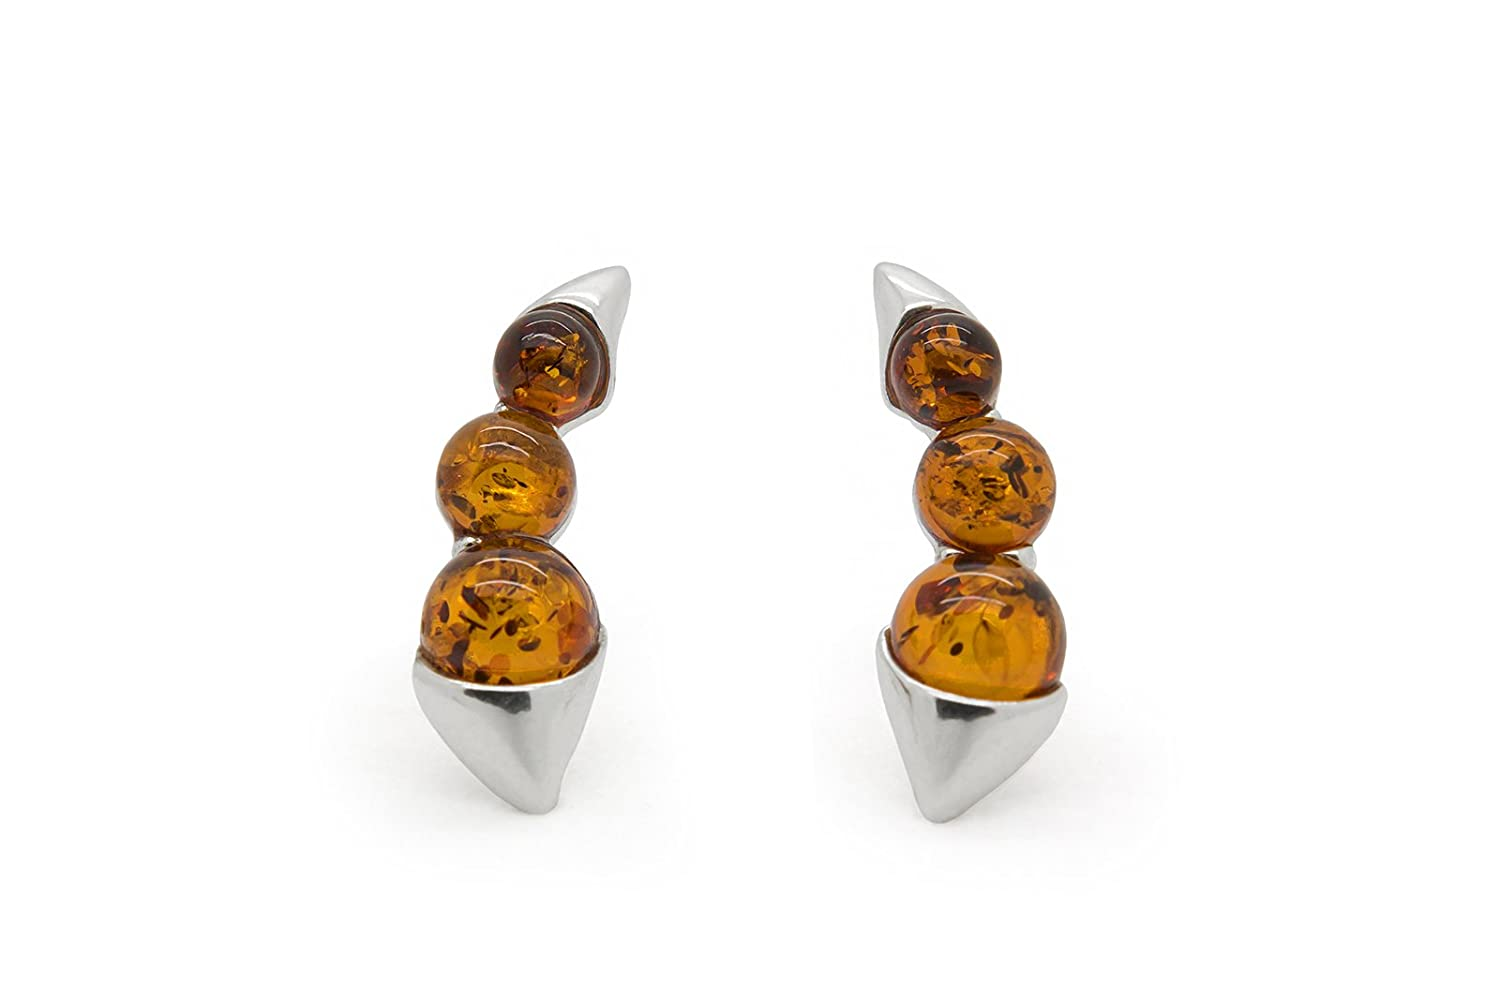 6e5397d76 Amazon.com: 925 Sterling Silver Climber / Crawler Stud Earrings with Cognac  Genuine Natural Baltic Amber.: Jewelry